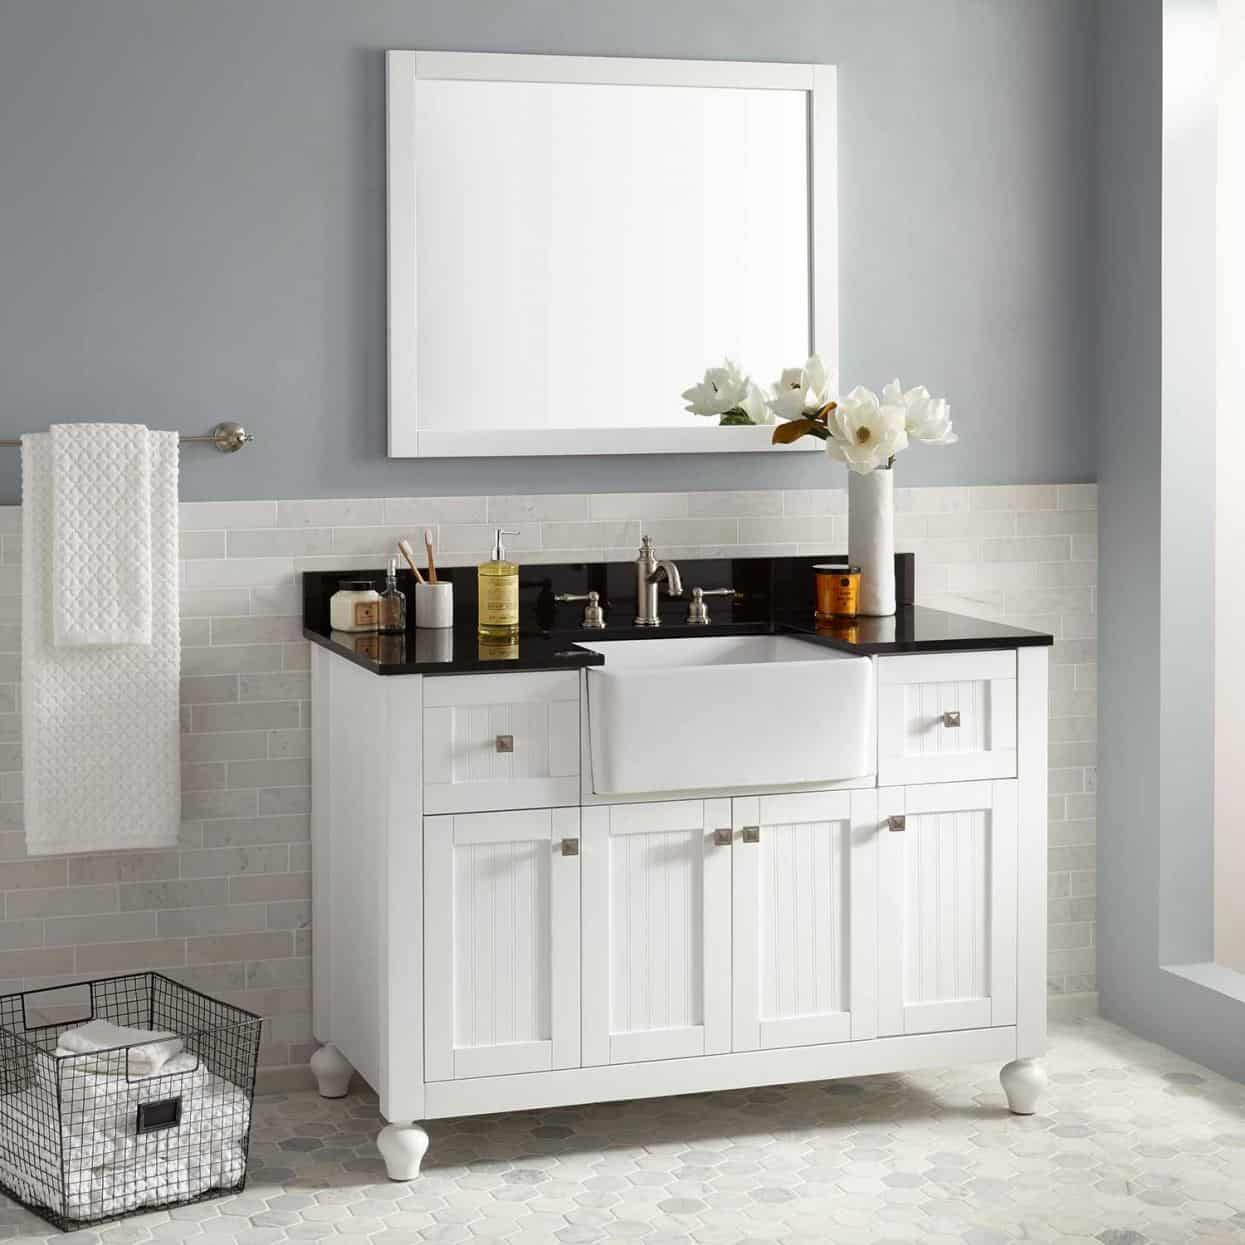 barn house sinks